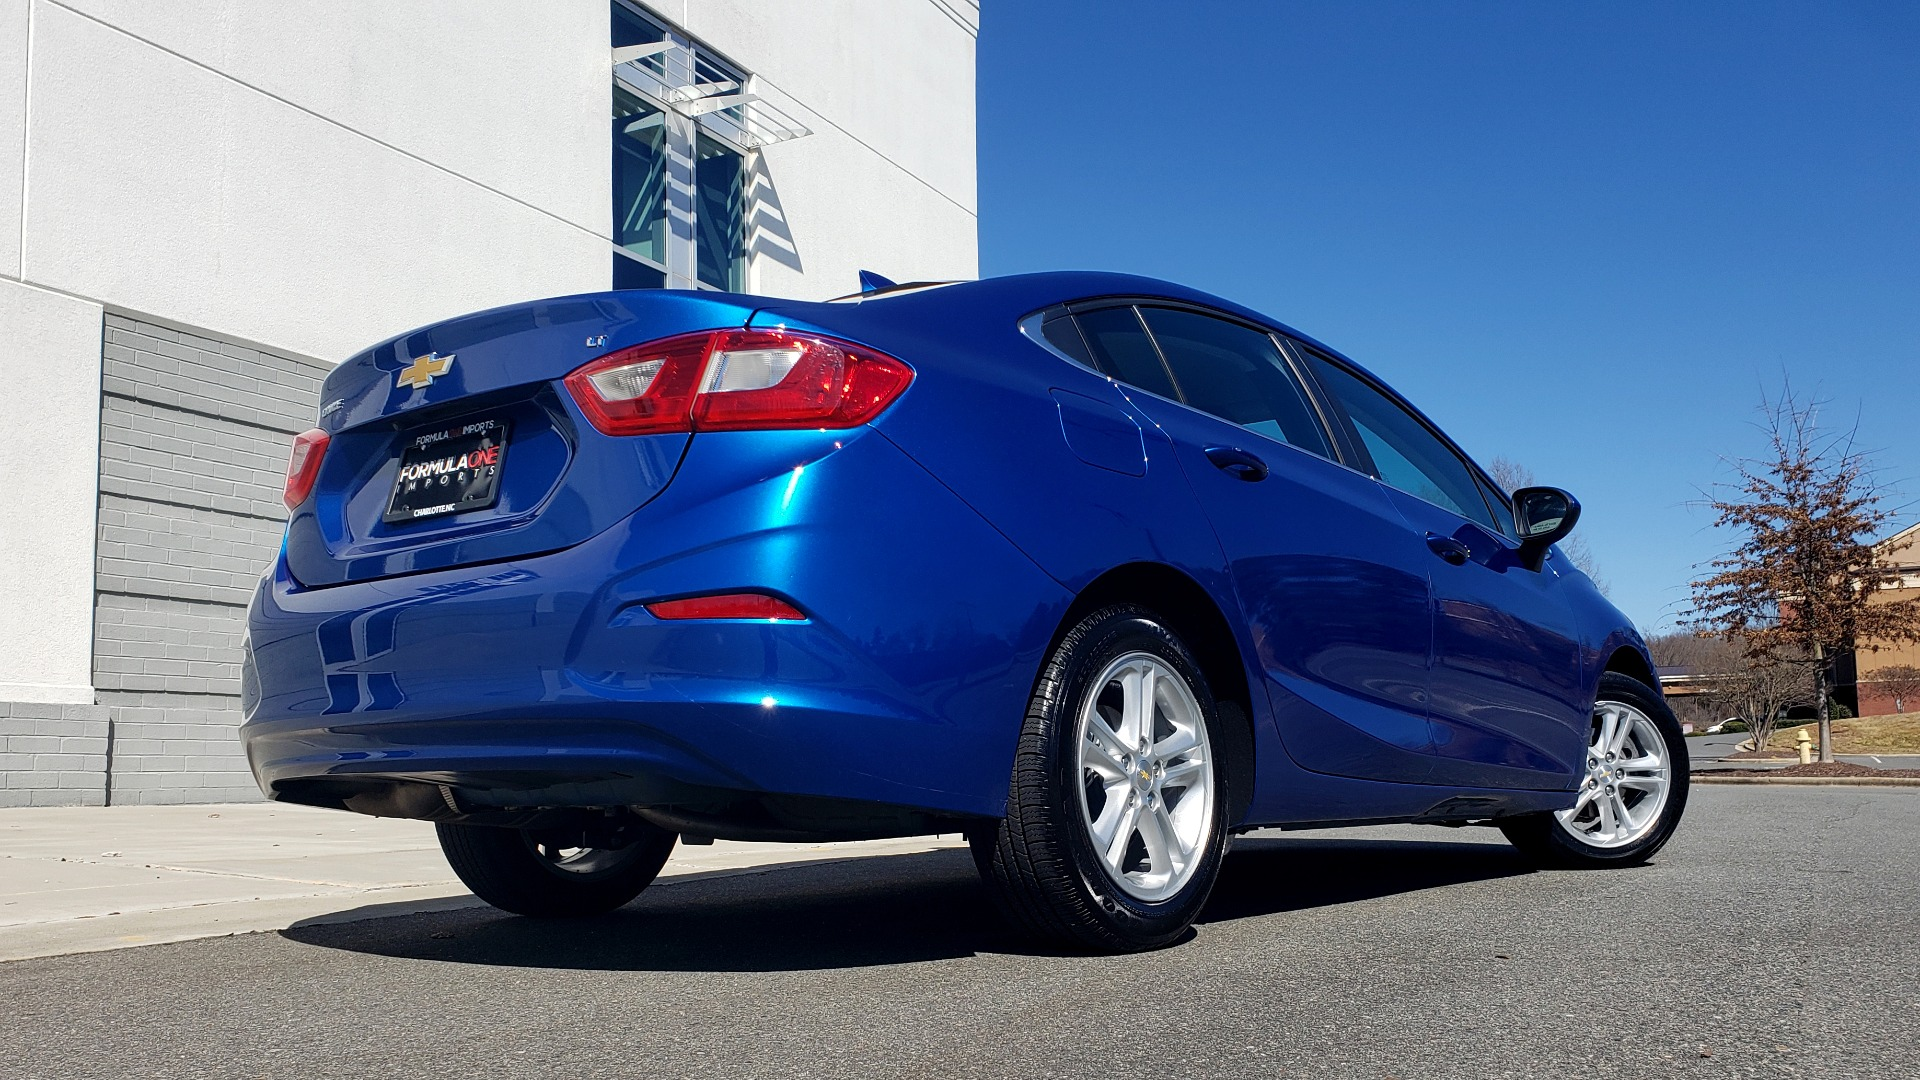 Used 2017 Chevrolet CRUZE LT 1.4L 1SD / 6-SPD AUTO / HTS STS / REMOTE START / REARVIEW for sale $11,495 at Formula Imports in Charlotte NC 28227 15